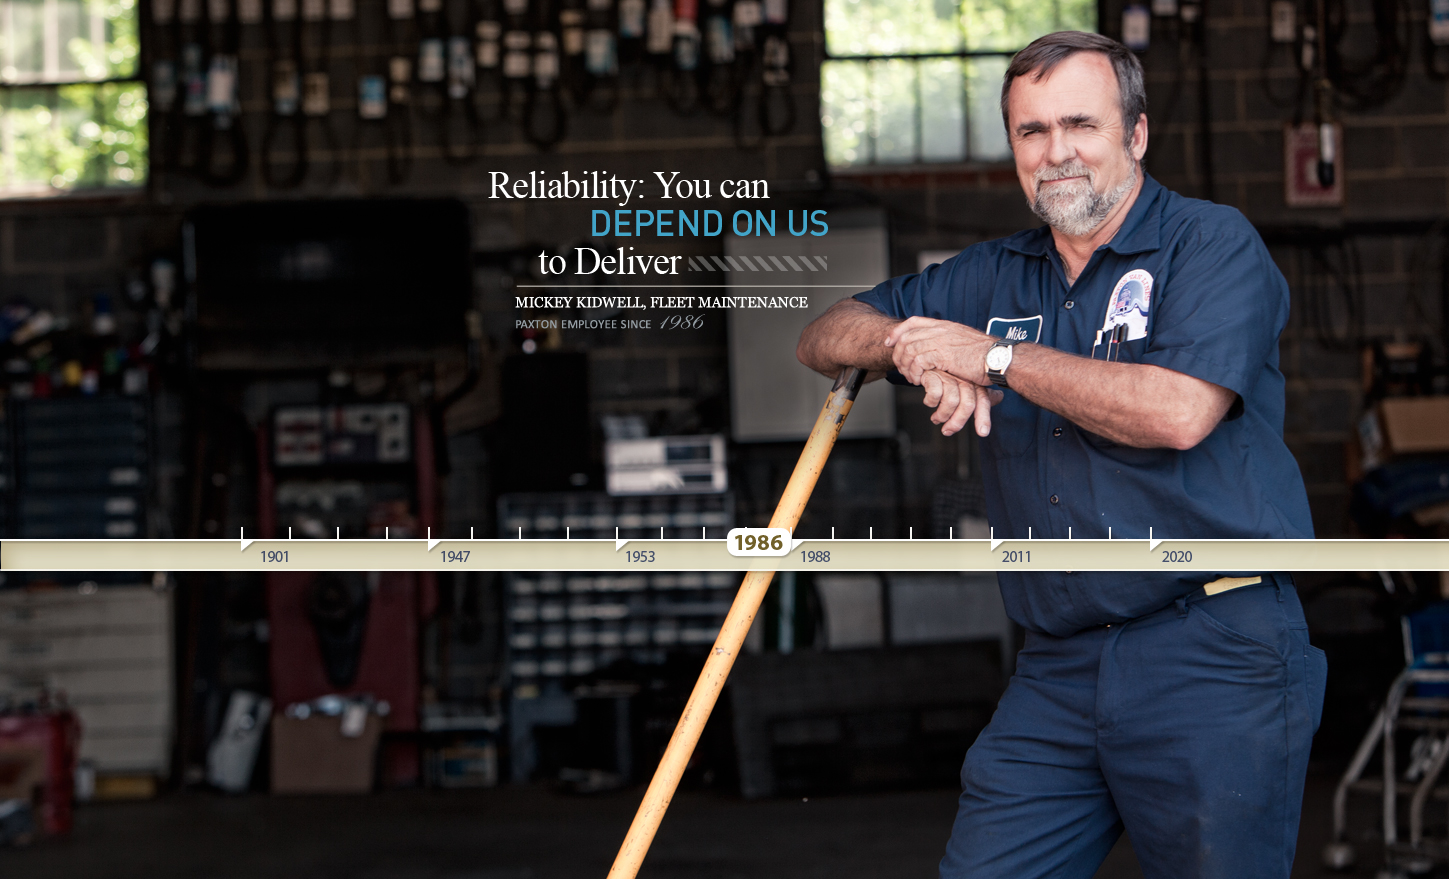 RELIABILITY: You can depend on us